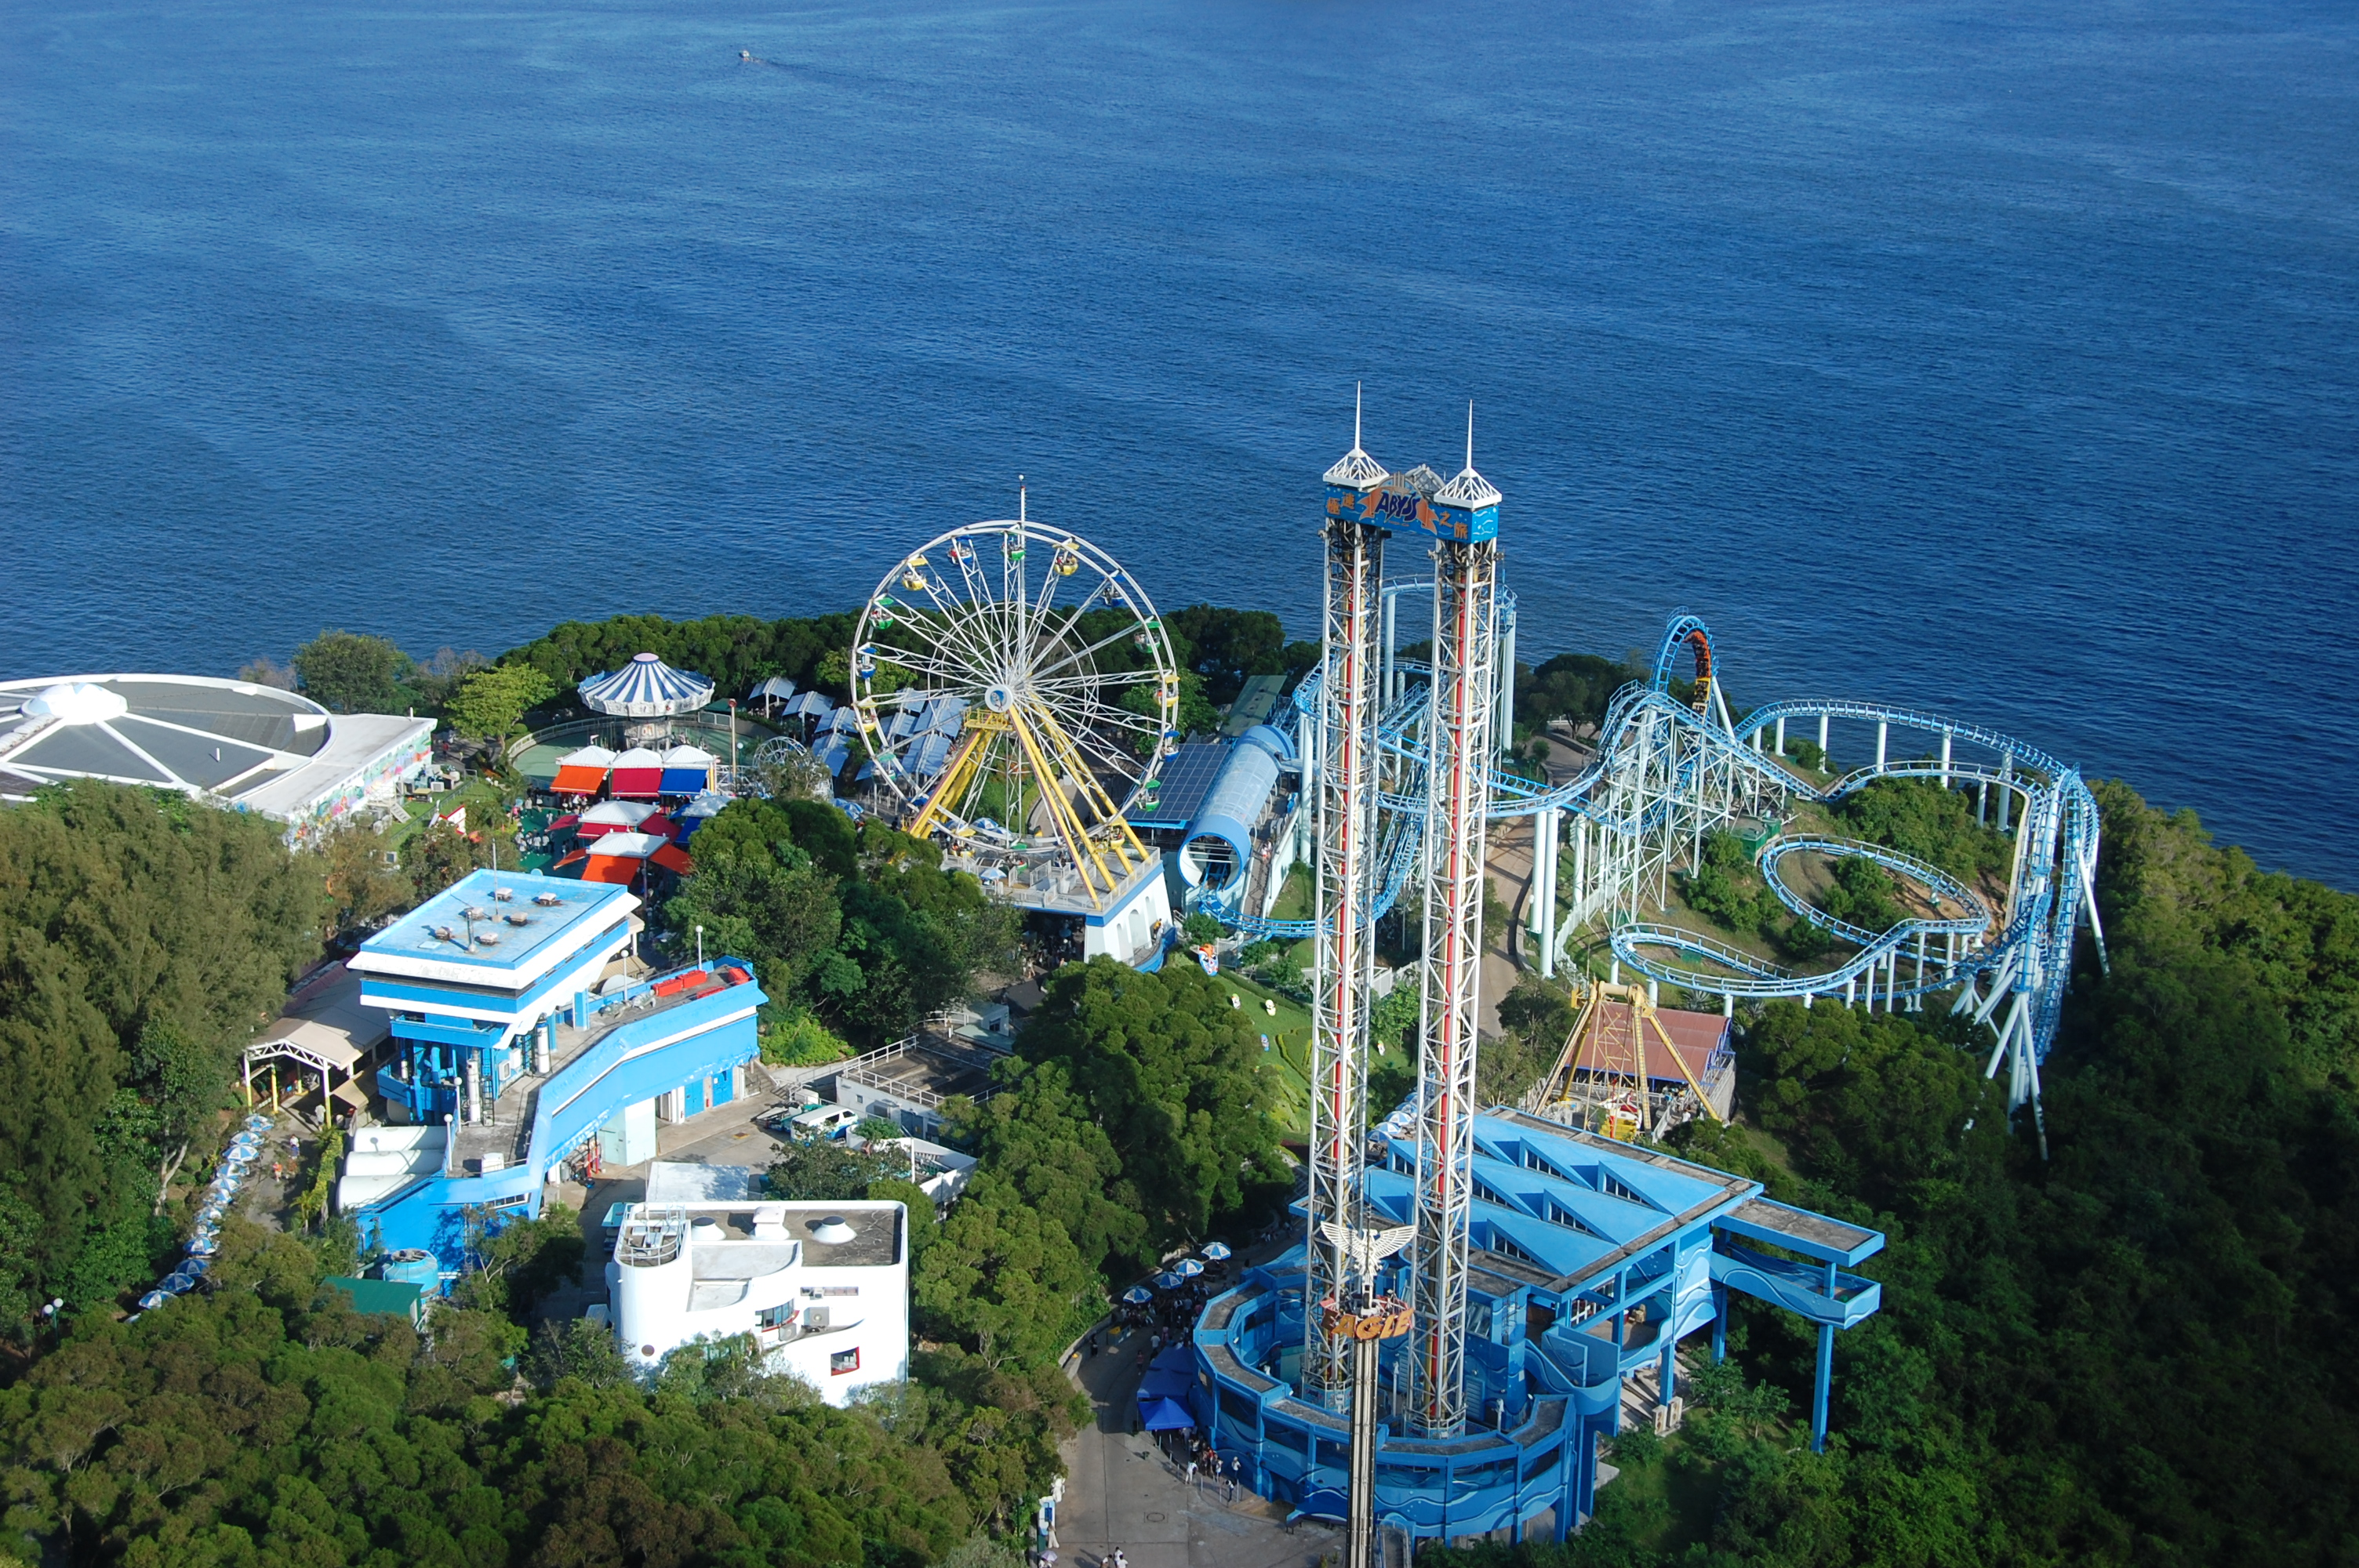 Amusement Parks by the sea? Count me in! Source: Wikimedia Commons